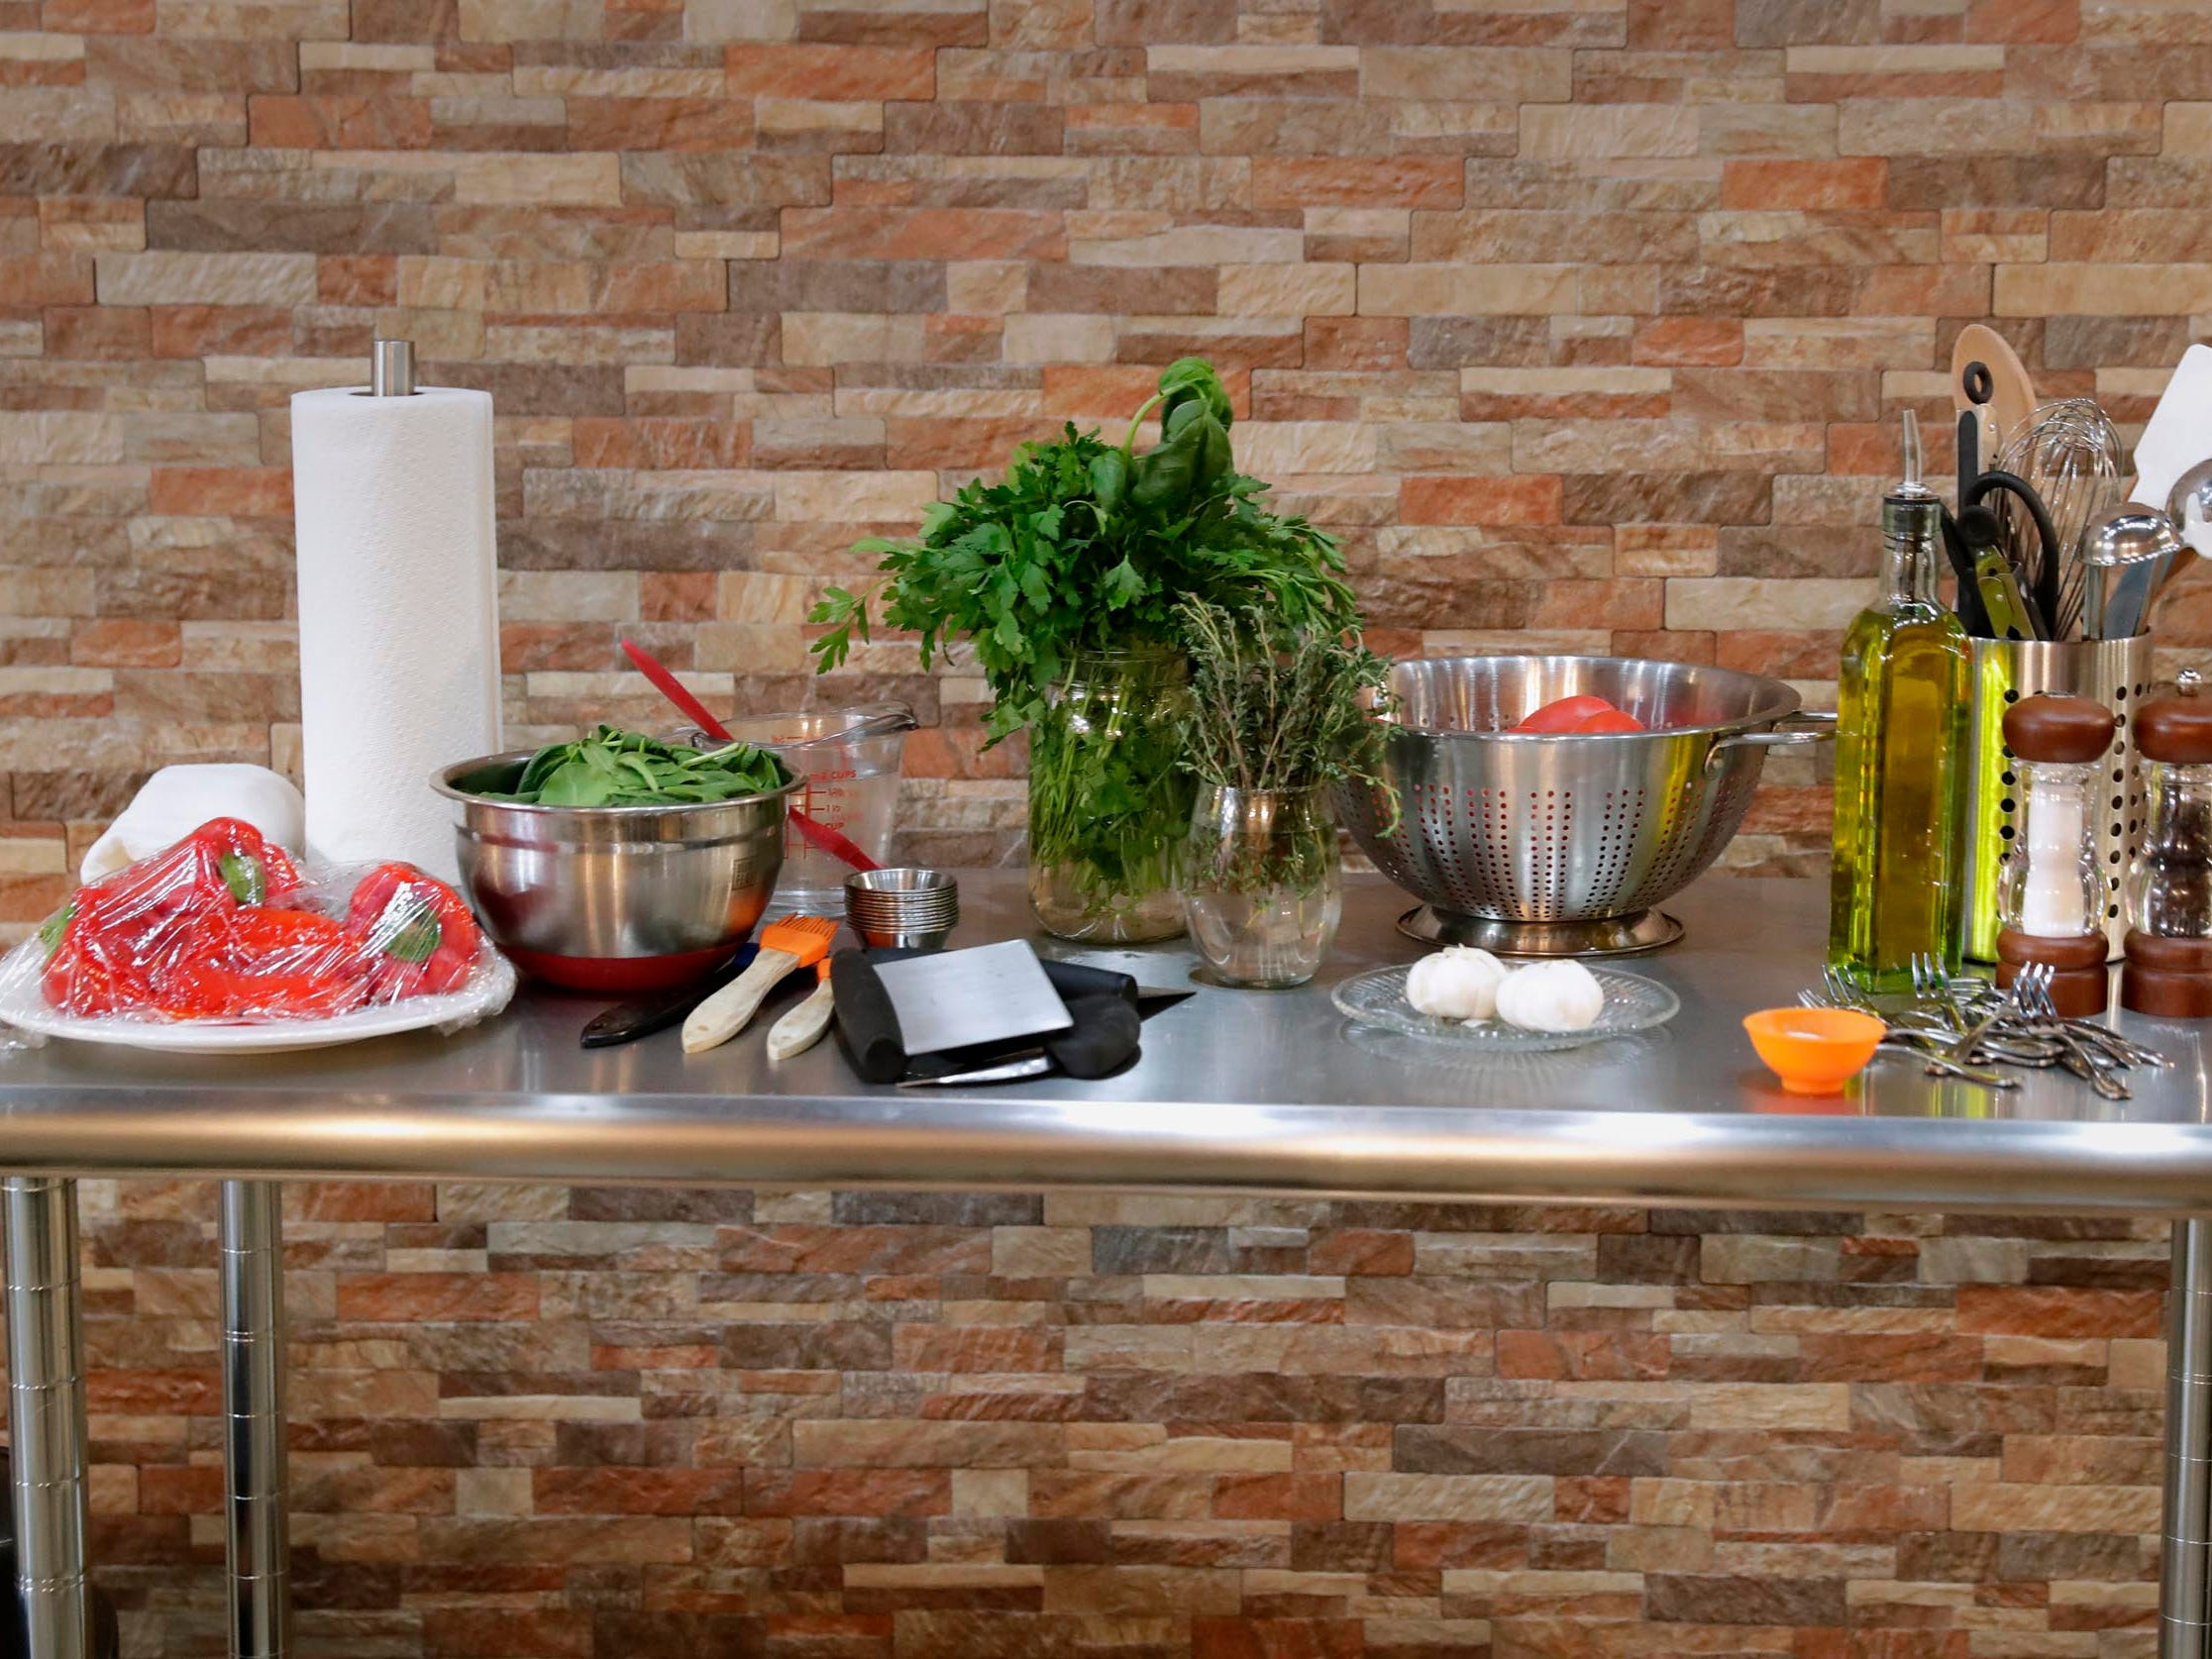 The instructor's station stands ready with roasted red peppers, herbs, spinach, tomatoes, eggs and more.